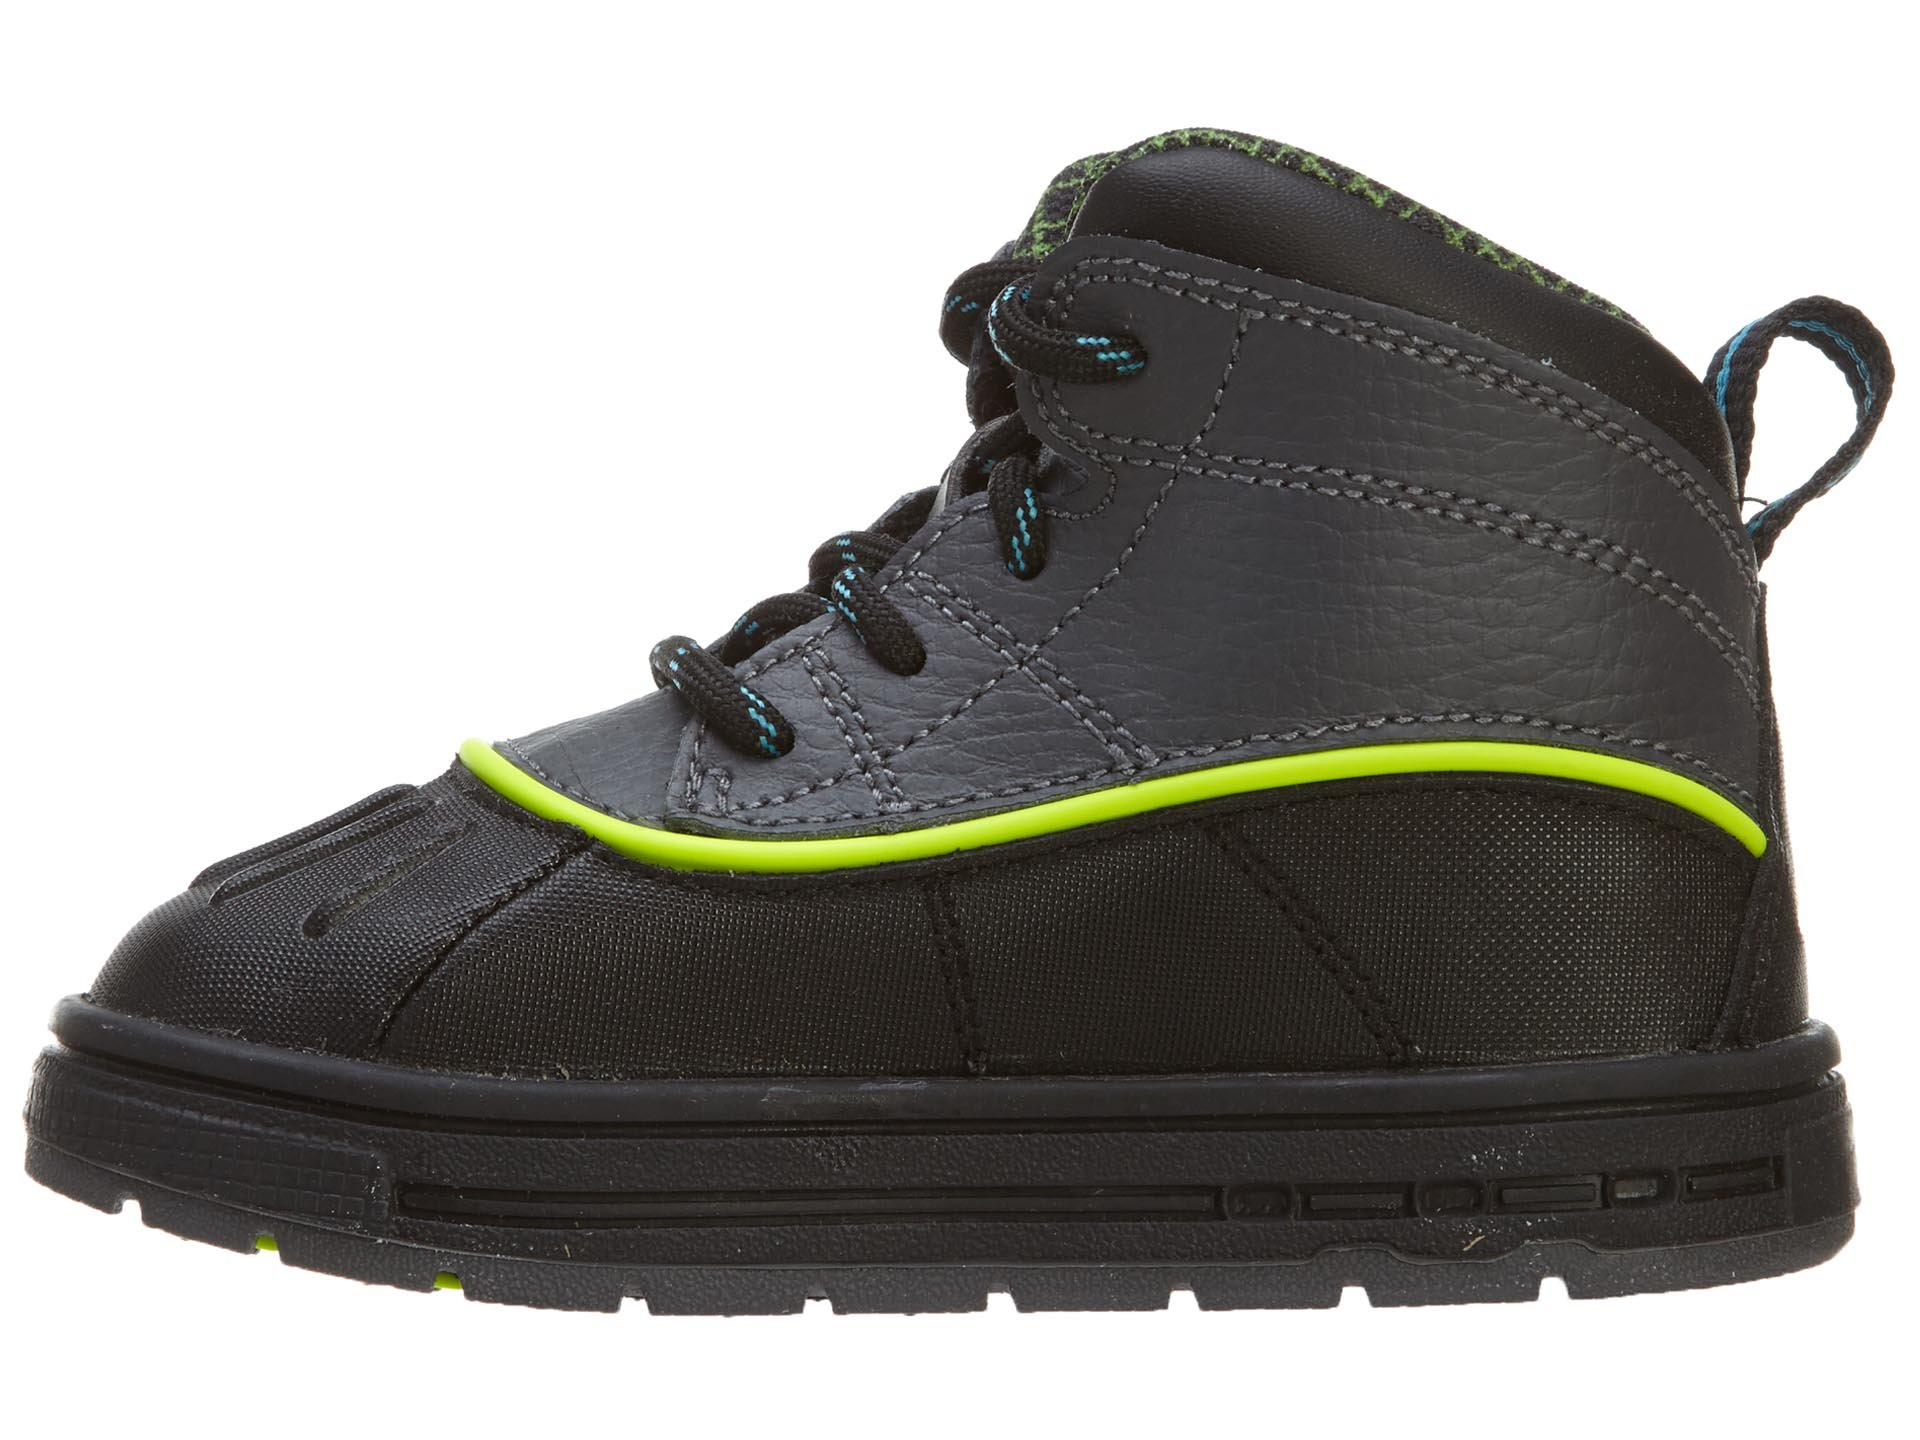 Nike Woodside 2 High (Td) Toddlers Boys/Girls Style: 524874-002 Size: 4 by Nike (Image #4)